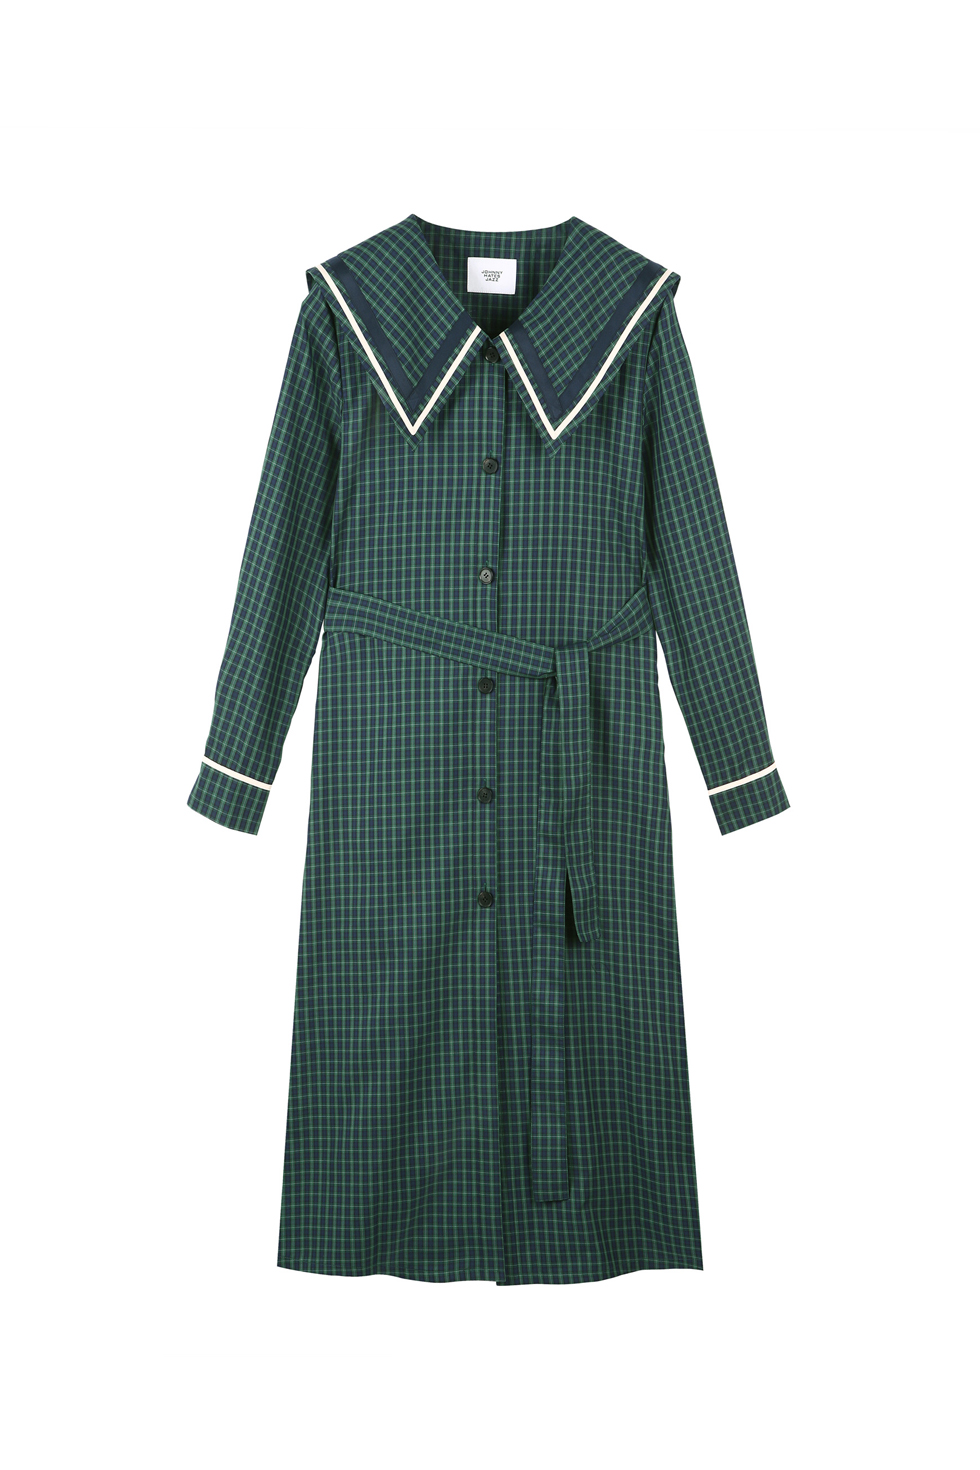 CHECK SHIRTS DRESS - GREEN